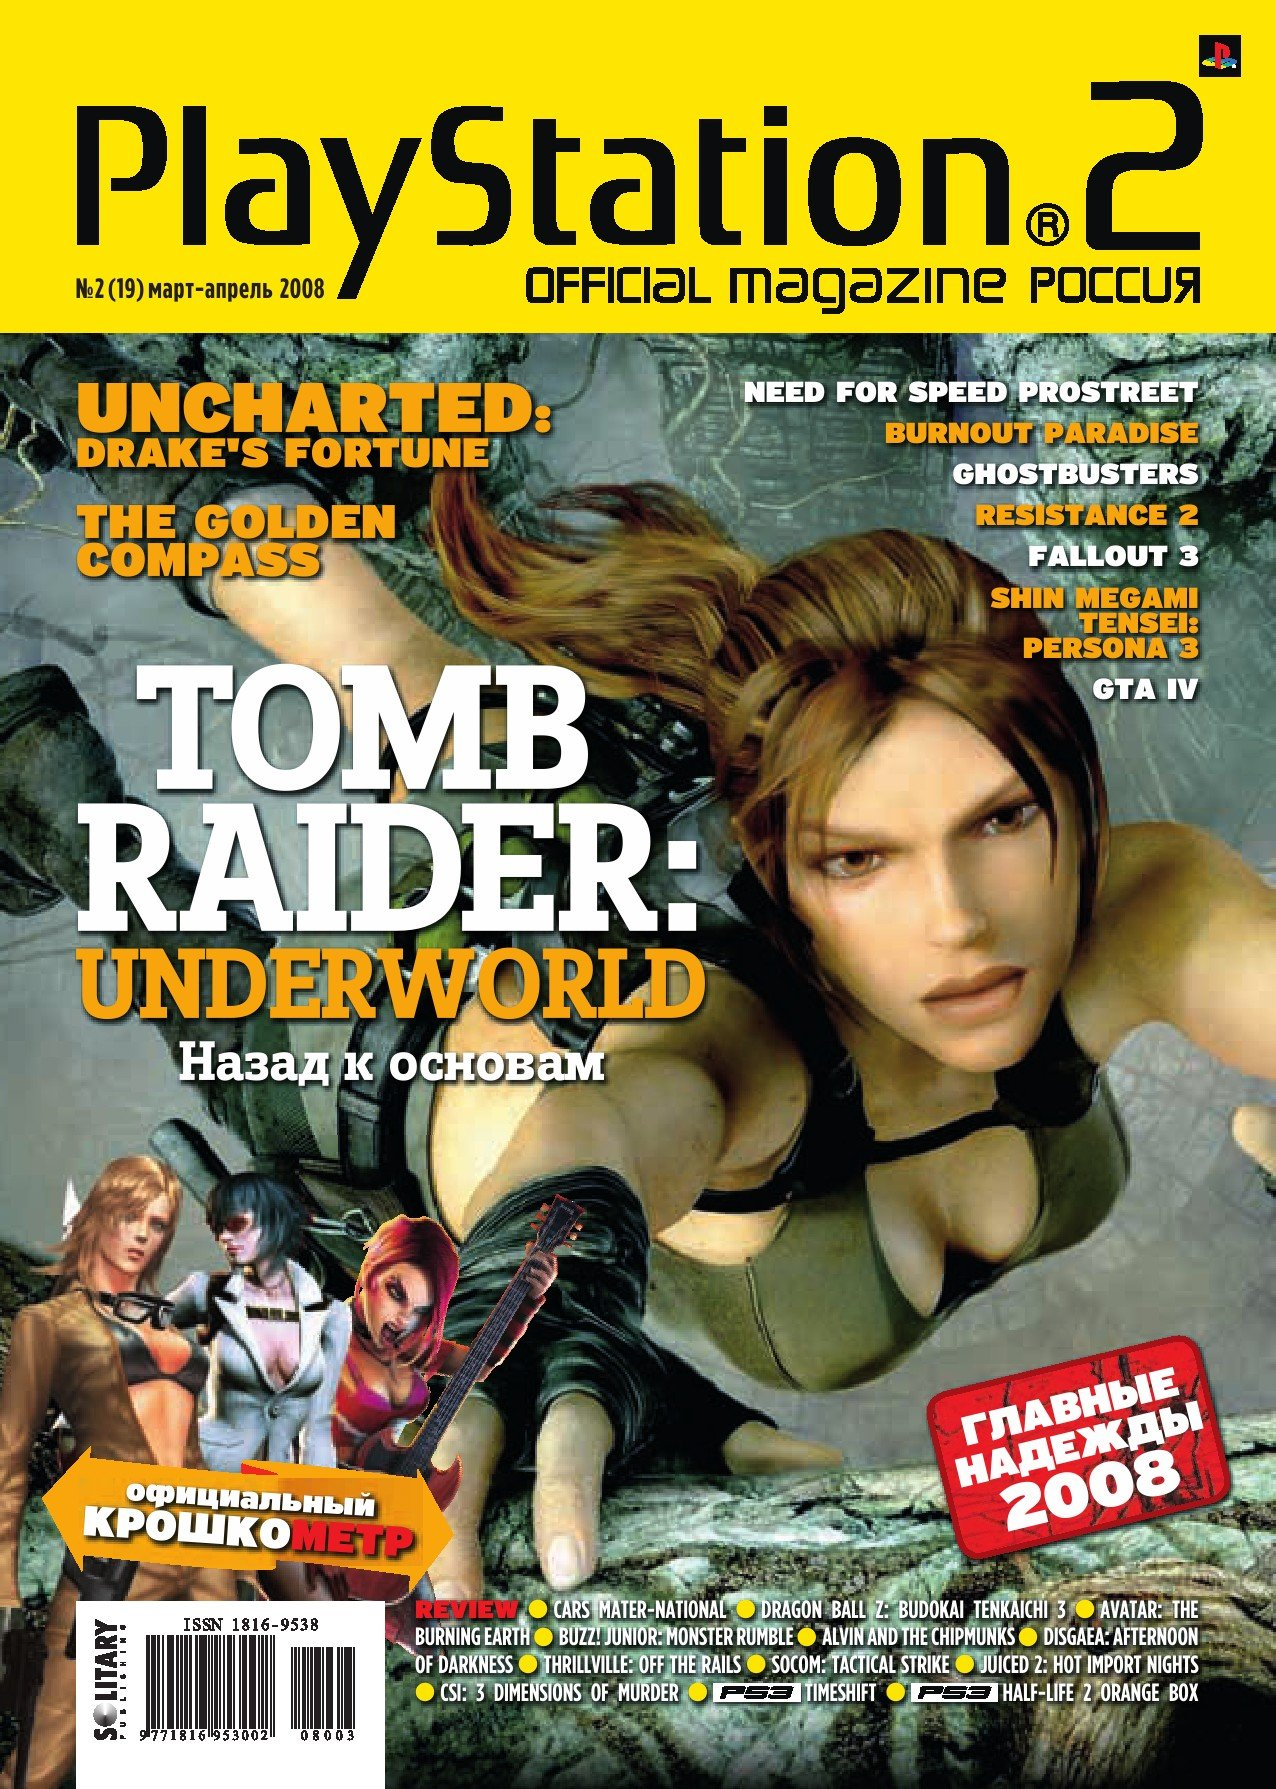 Playstation 2 Official Magazine (Russia) Issue 19 - Mar./Apr. '08